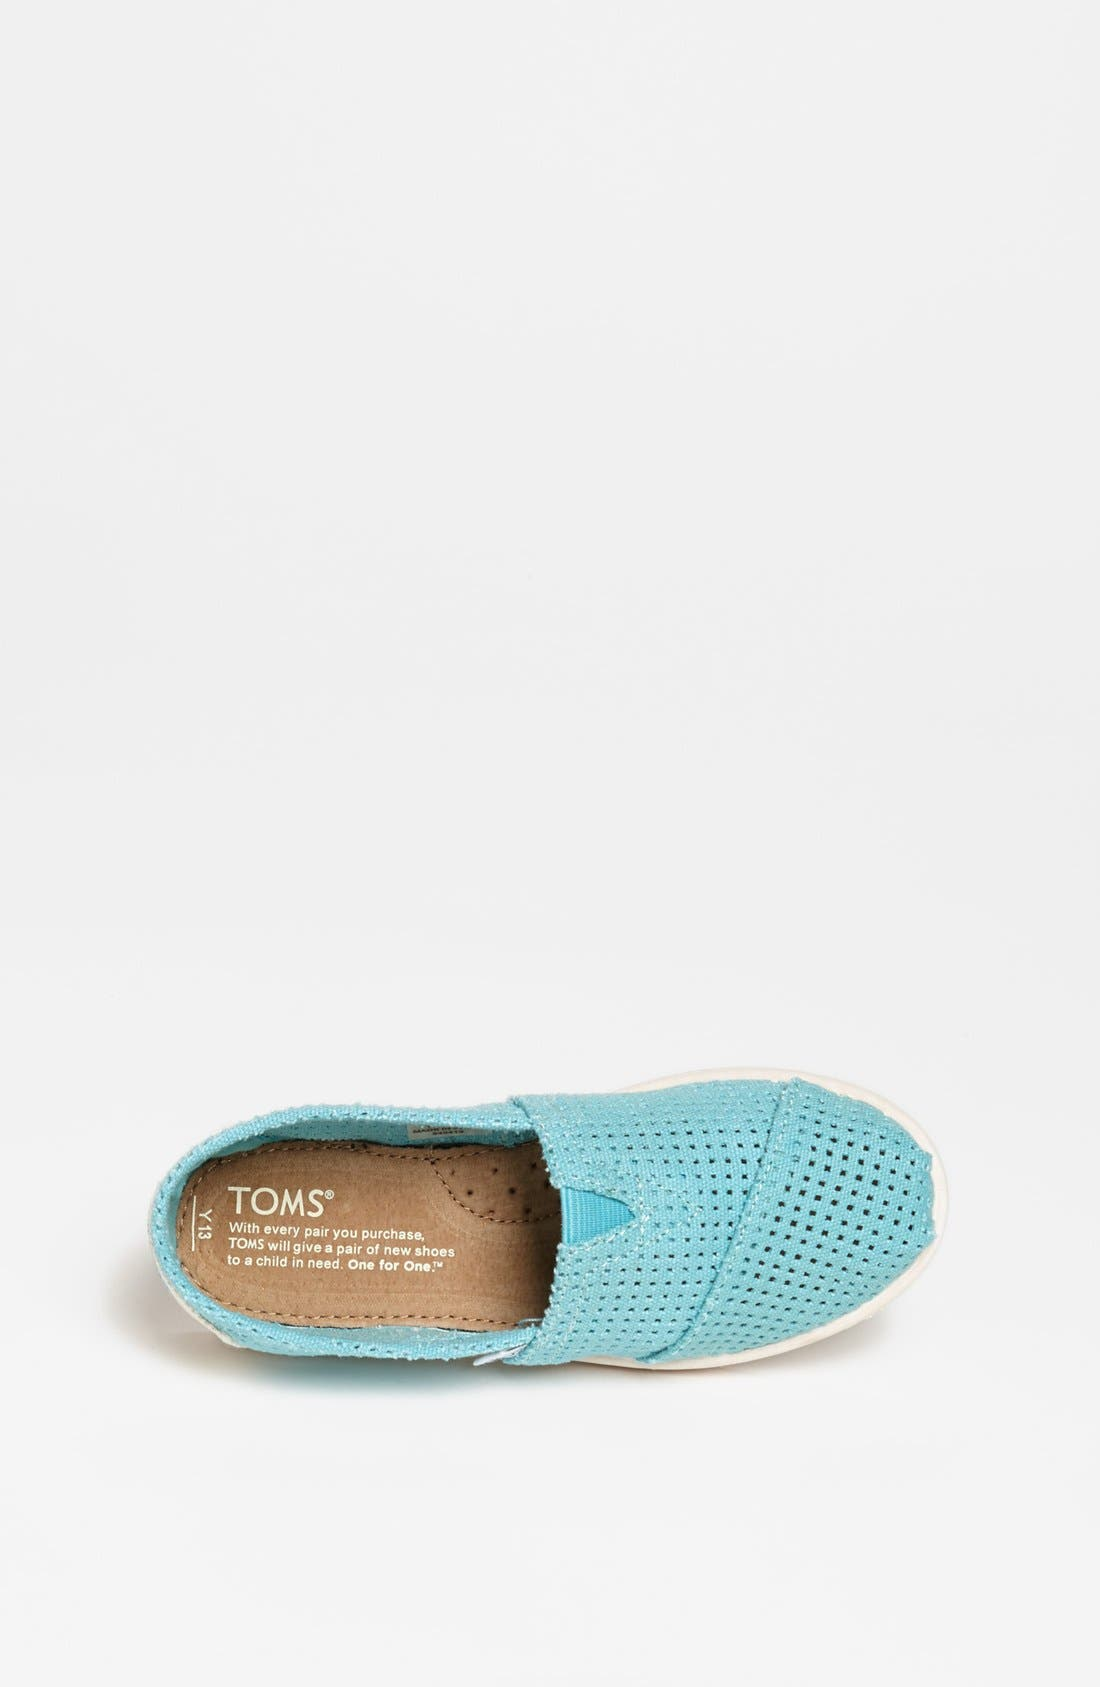 Alternate Image 3  - TOMS 'Classic - Youth' Perforated Slip-On (Toddler, Little Kid & Big Kid)